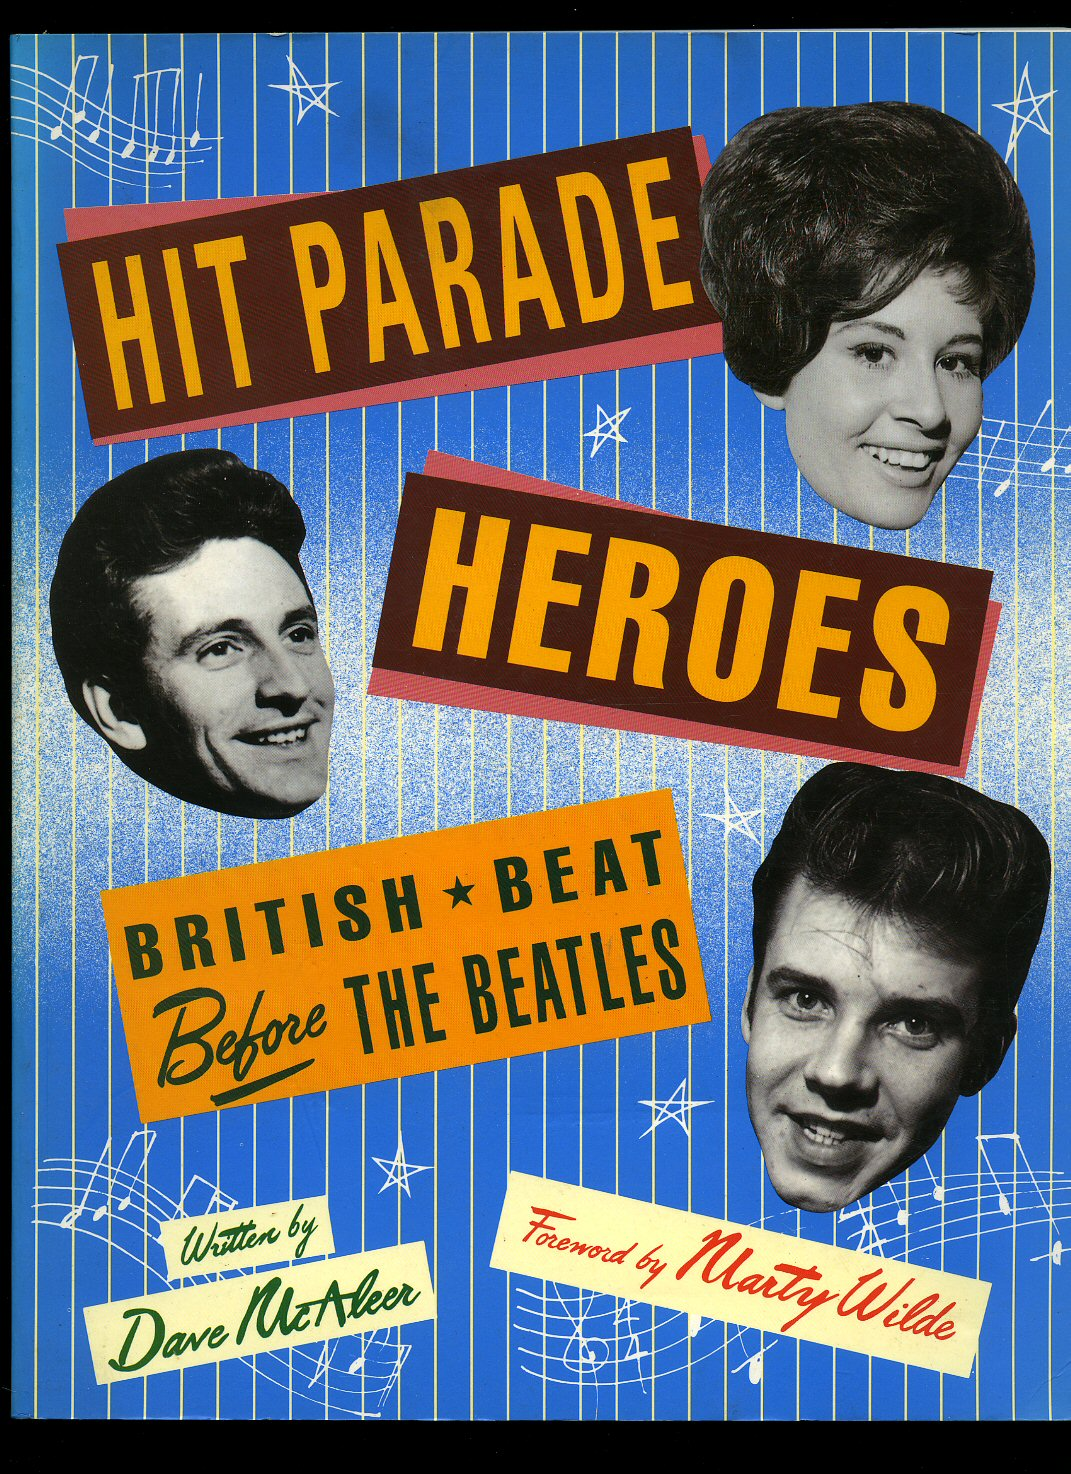 MCALEER, DAVE [FOREWORD BY MARTY WILDE] - Hit Parade Heroes; British Beat Before The Beatles